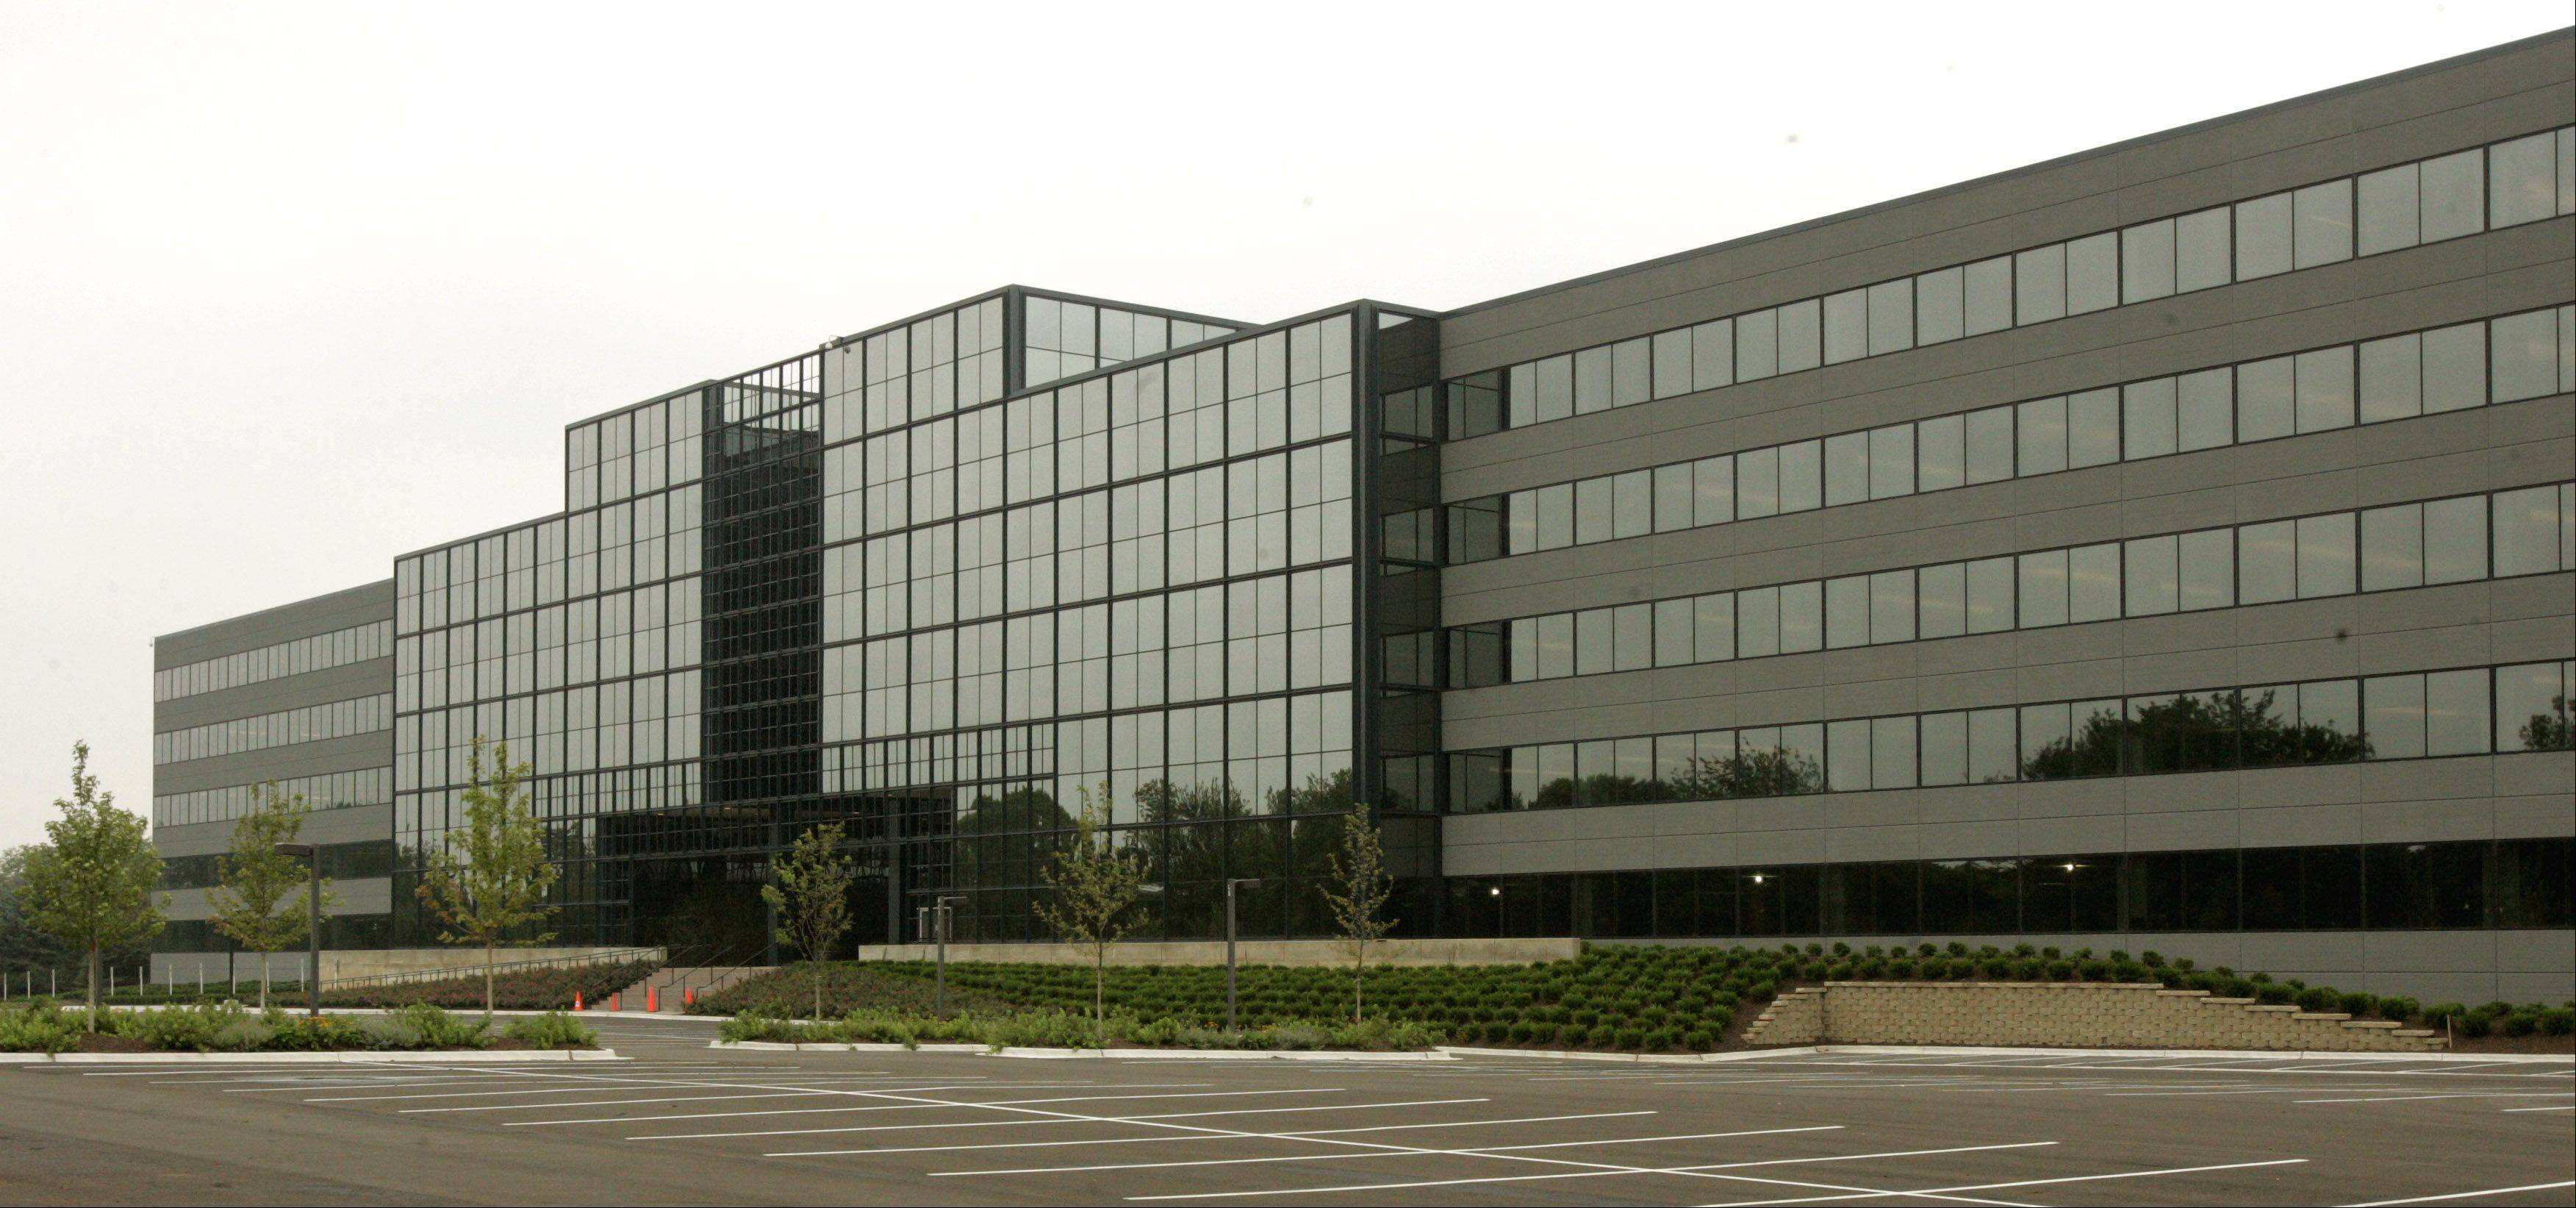 The OfficeMax headquarters in Naperville.